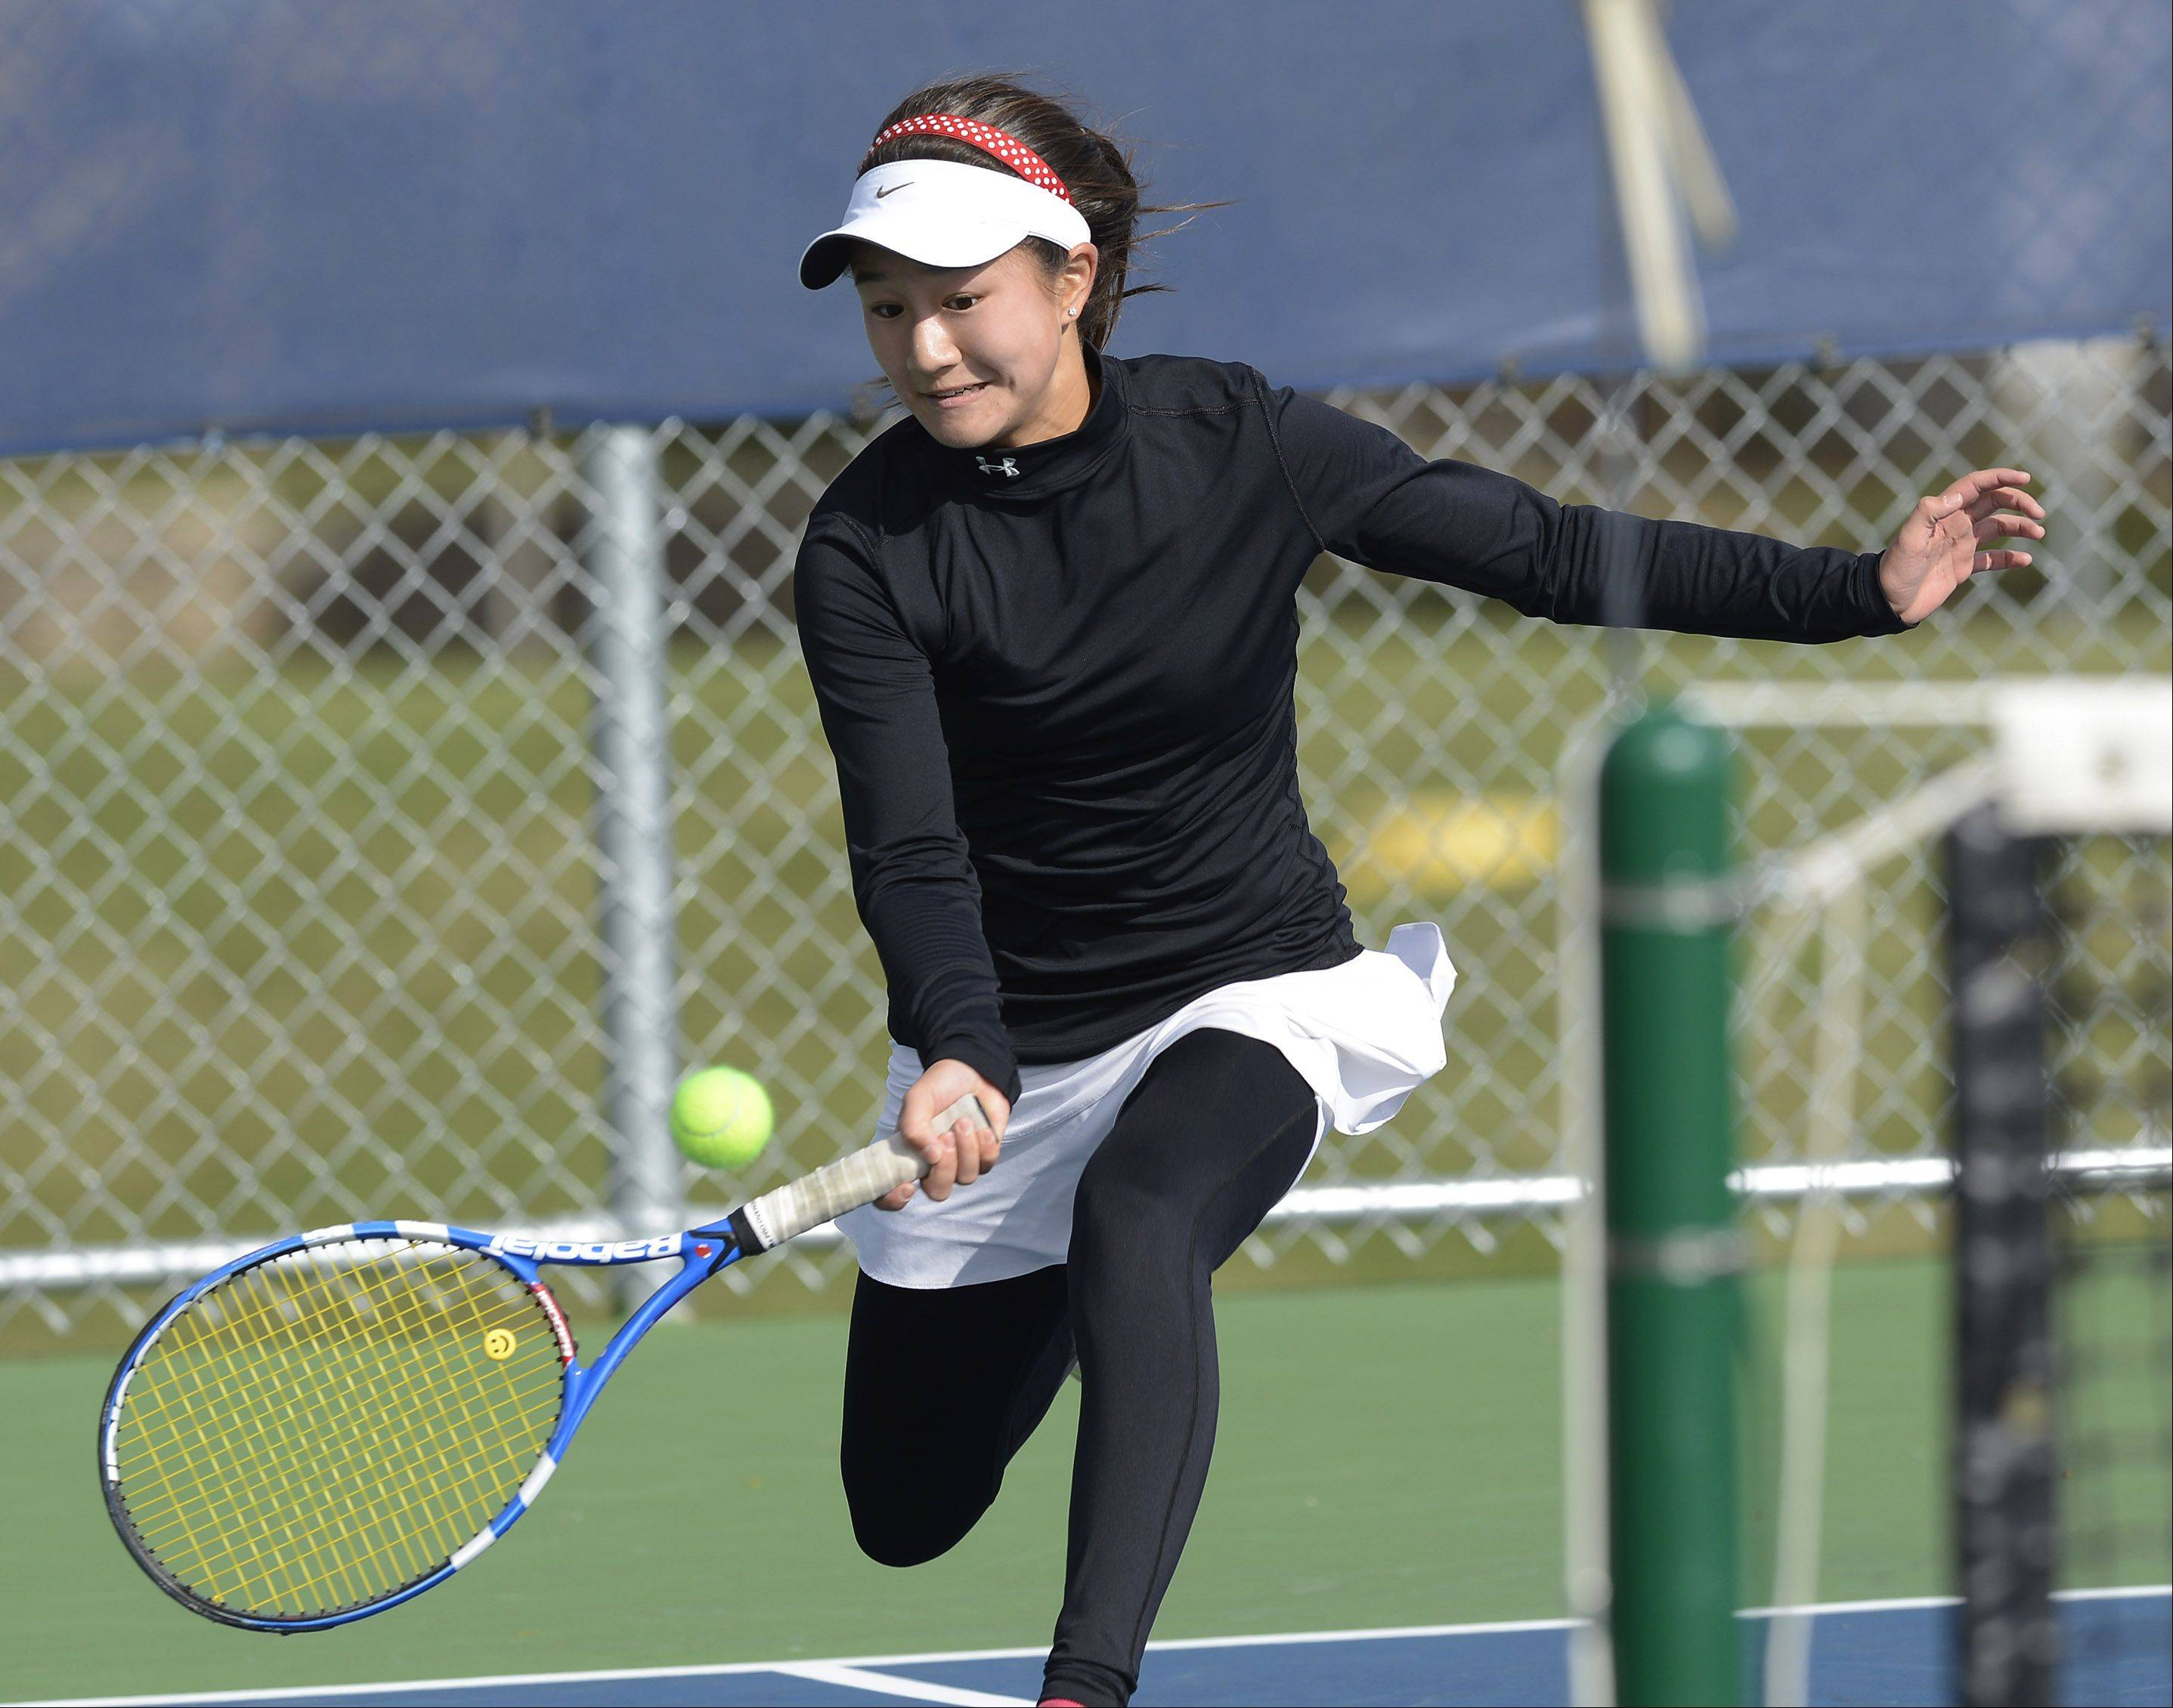 Naperville Central's Tiffany Chen hustles to keep a ball in play during the girls state tennis semifinals at Buffalo Grove High School Saturday.